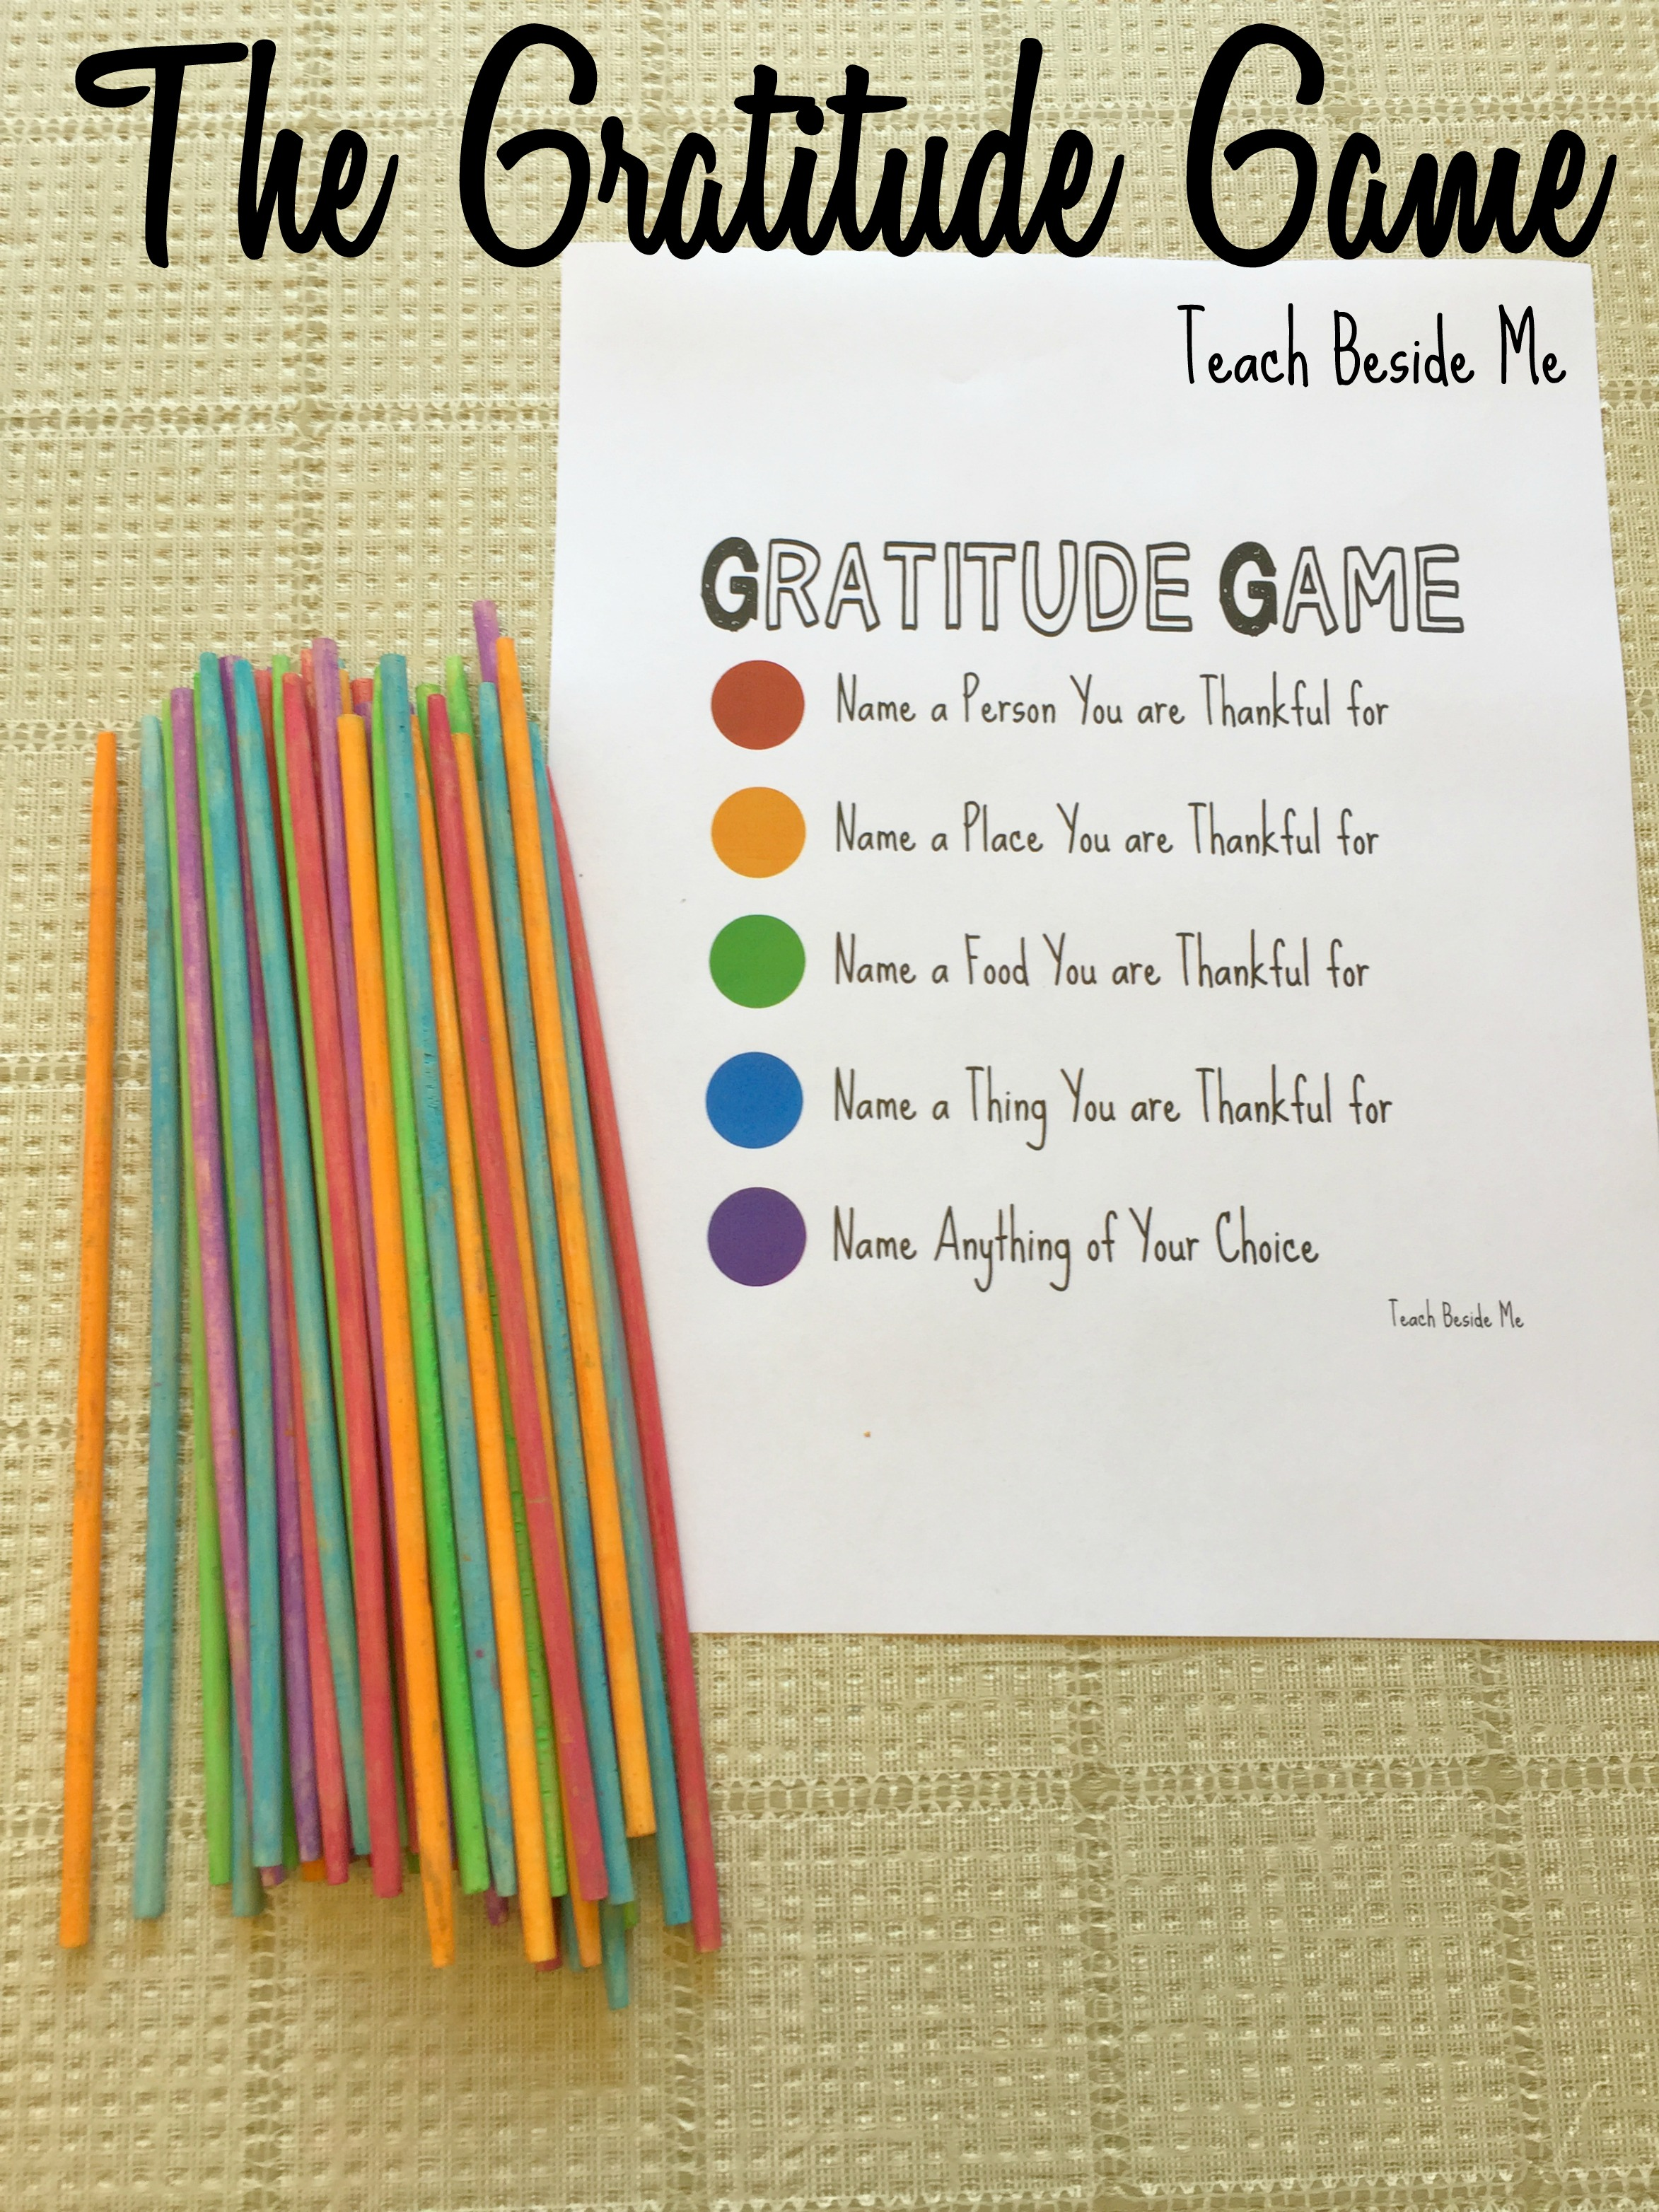 The Gratitude Game Pick Up Sticks – Teach Beside Me